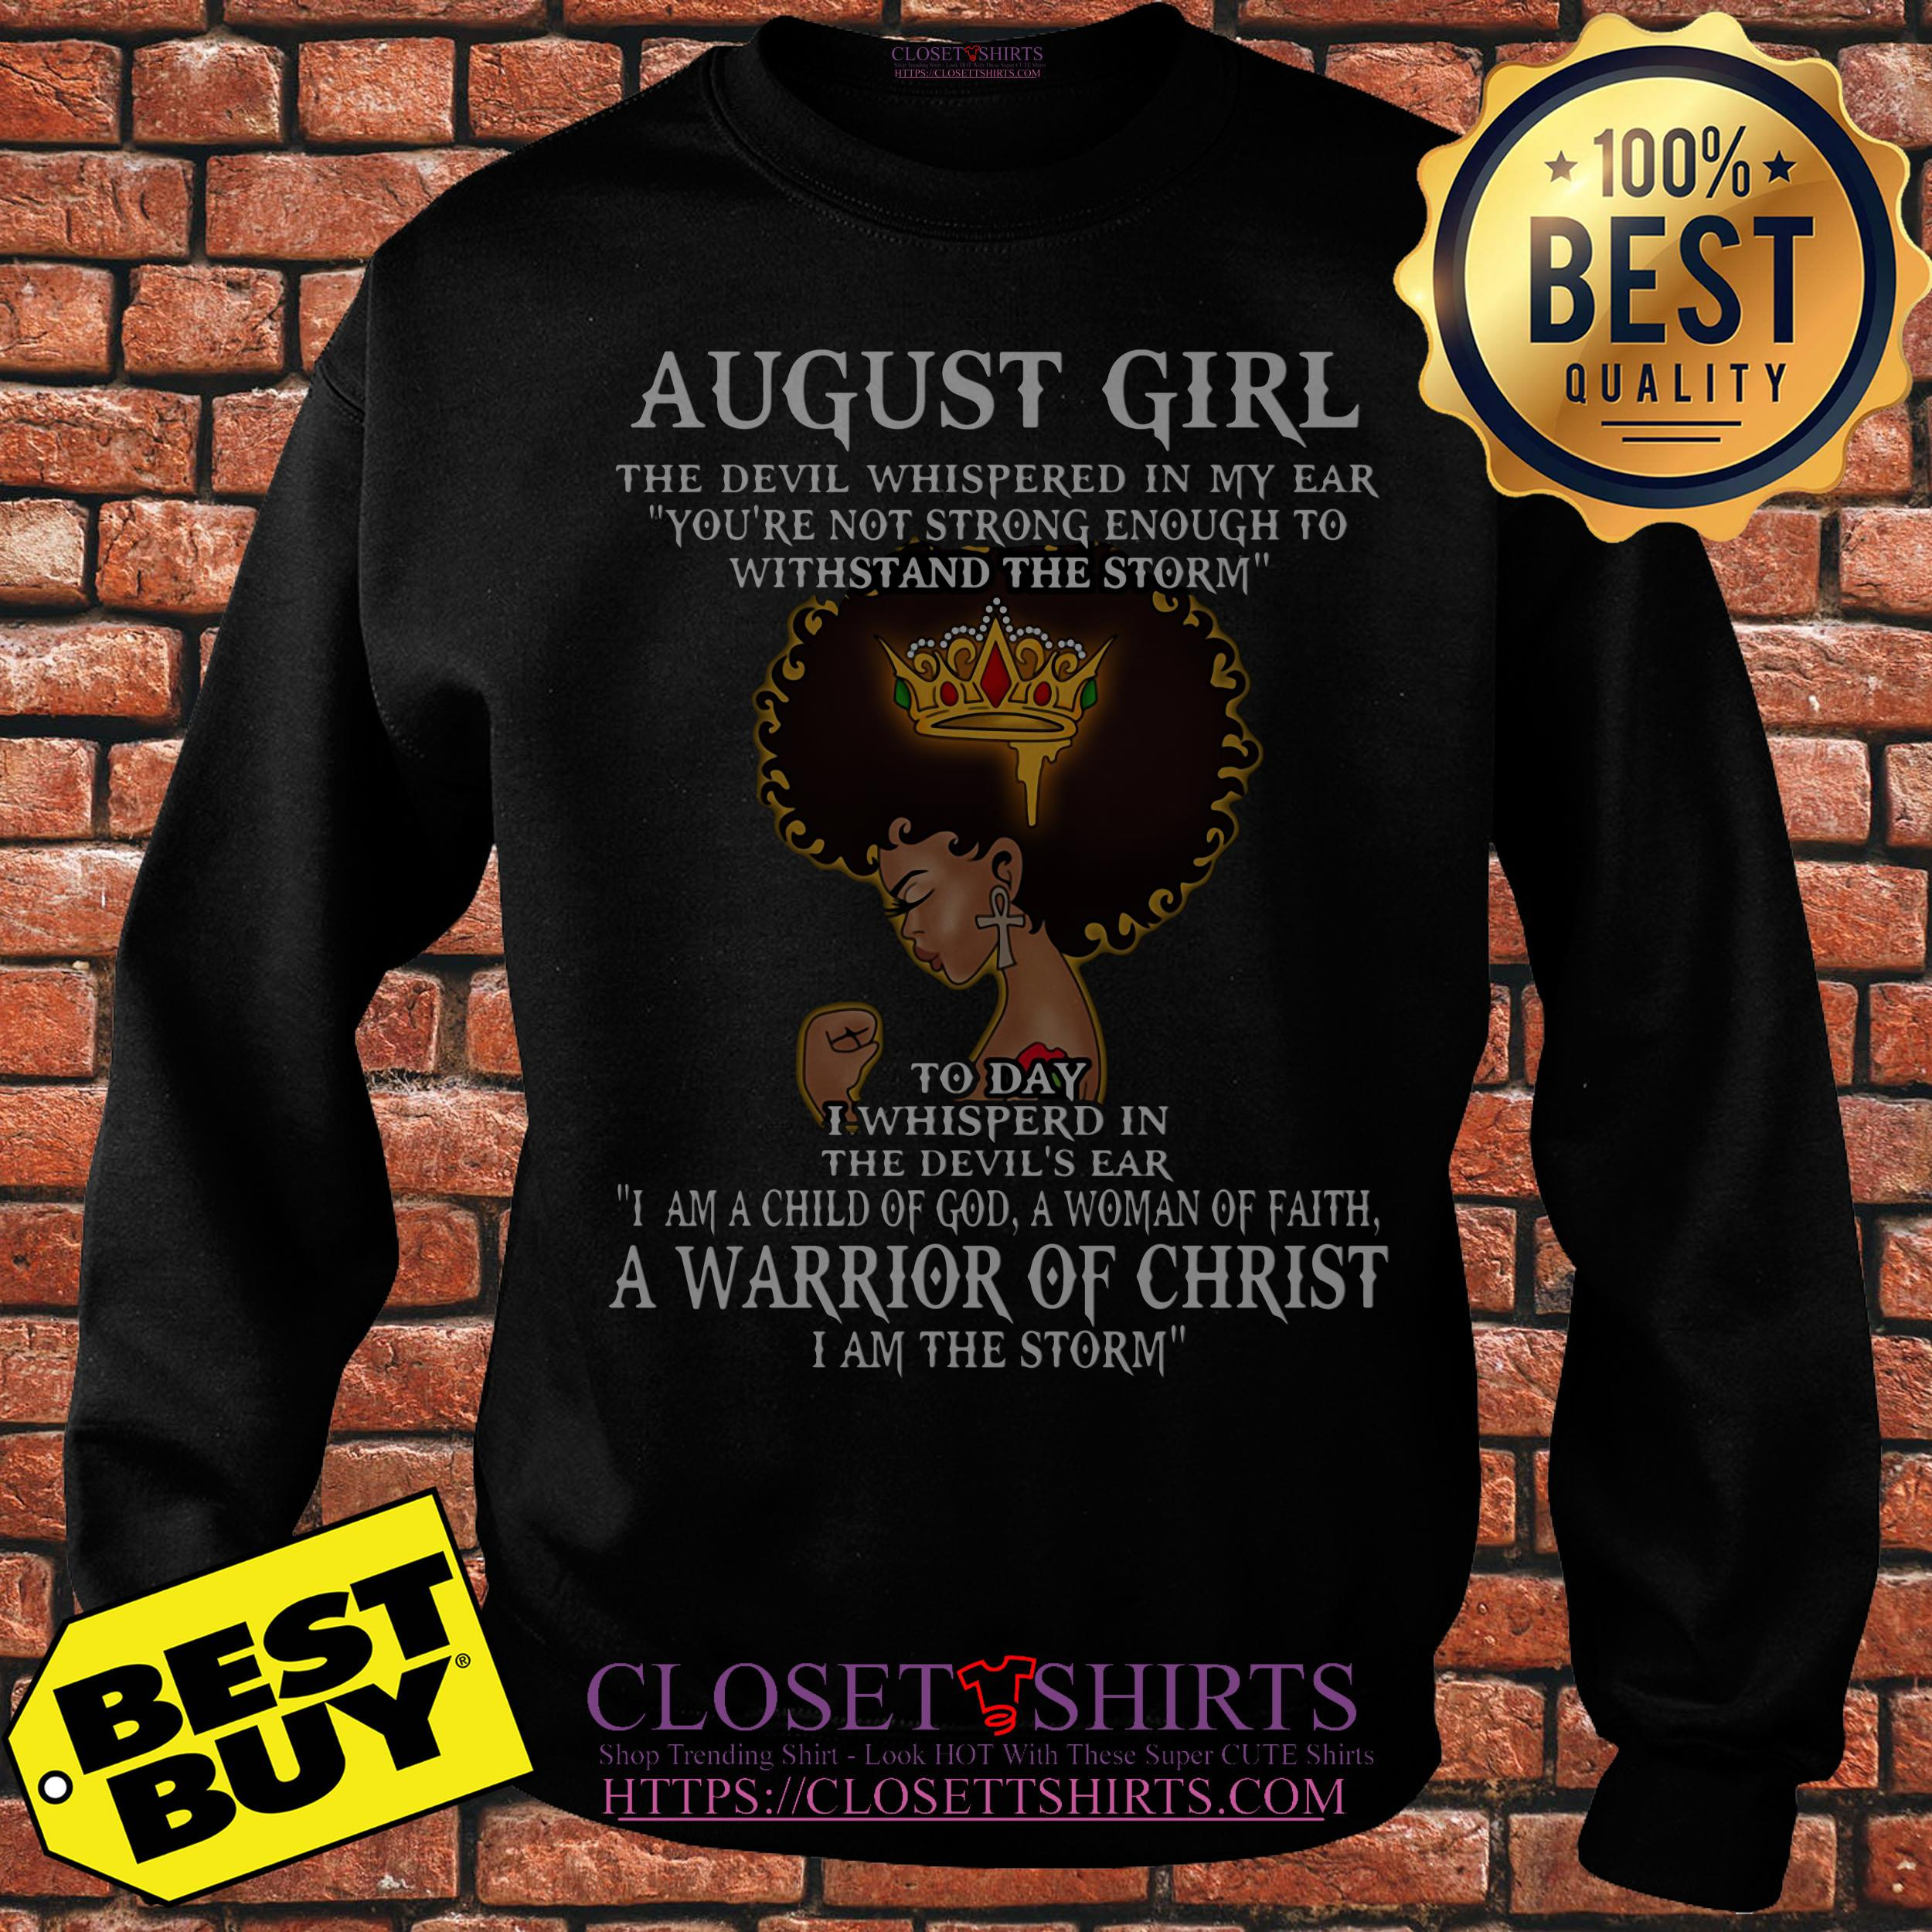 August Girl The Devil Whispered In My Ear A Warrior Of Christ sweatshirt